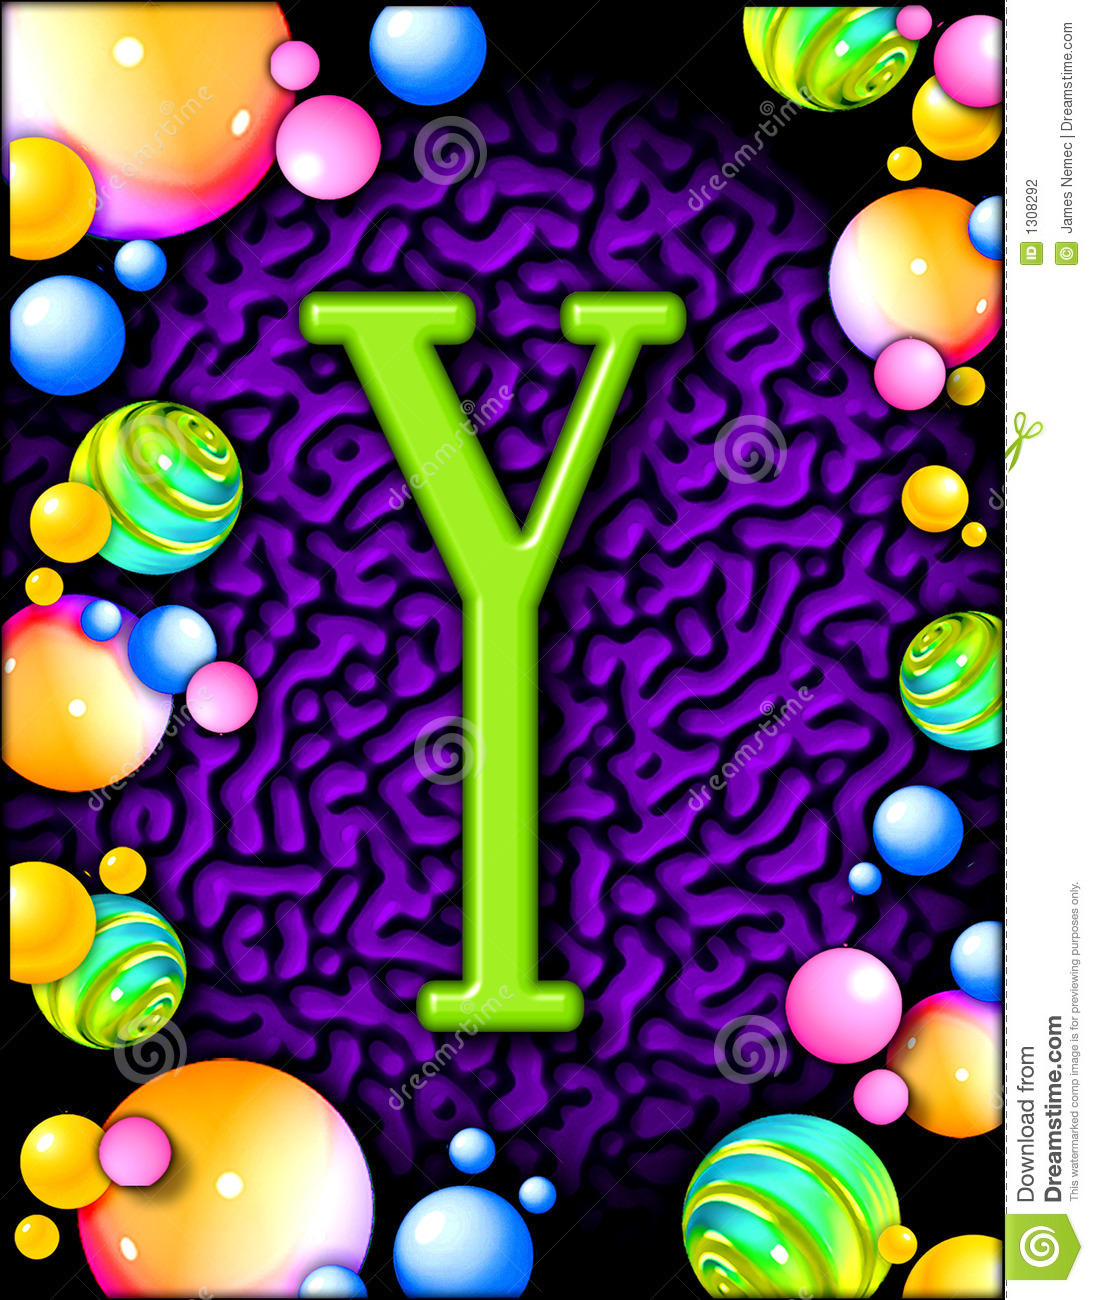 Party alphabet y stock illustration illustration of purple 1308292 party alphabet y thecheapjerseys Image collections